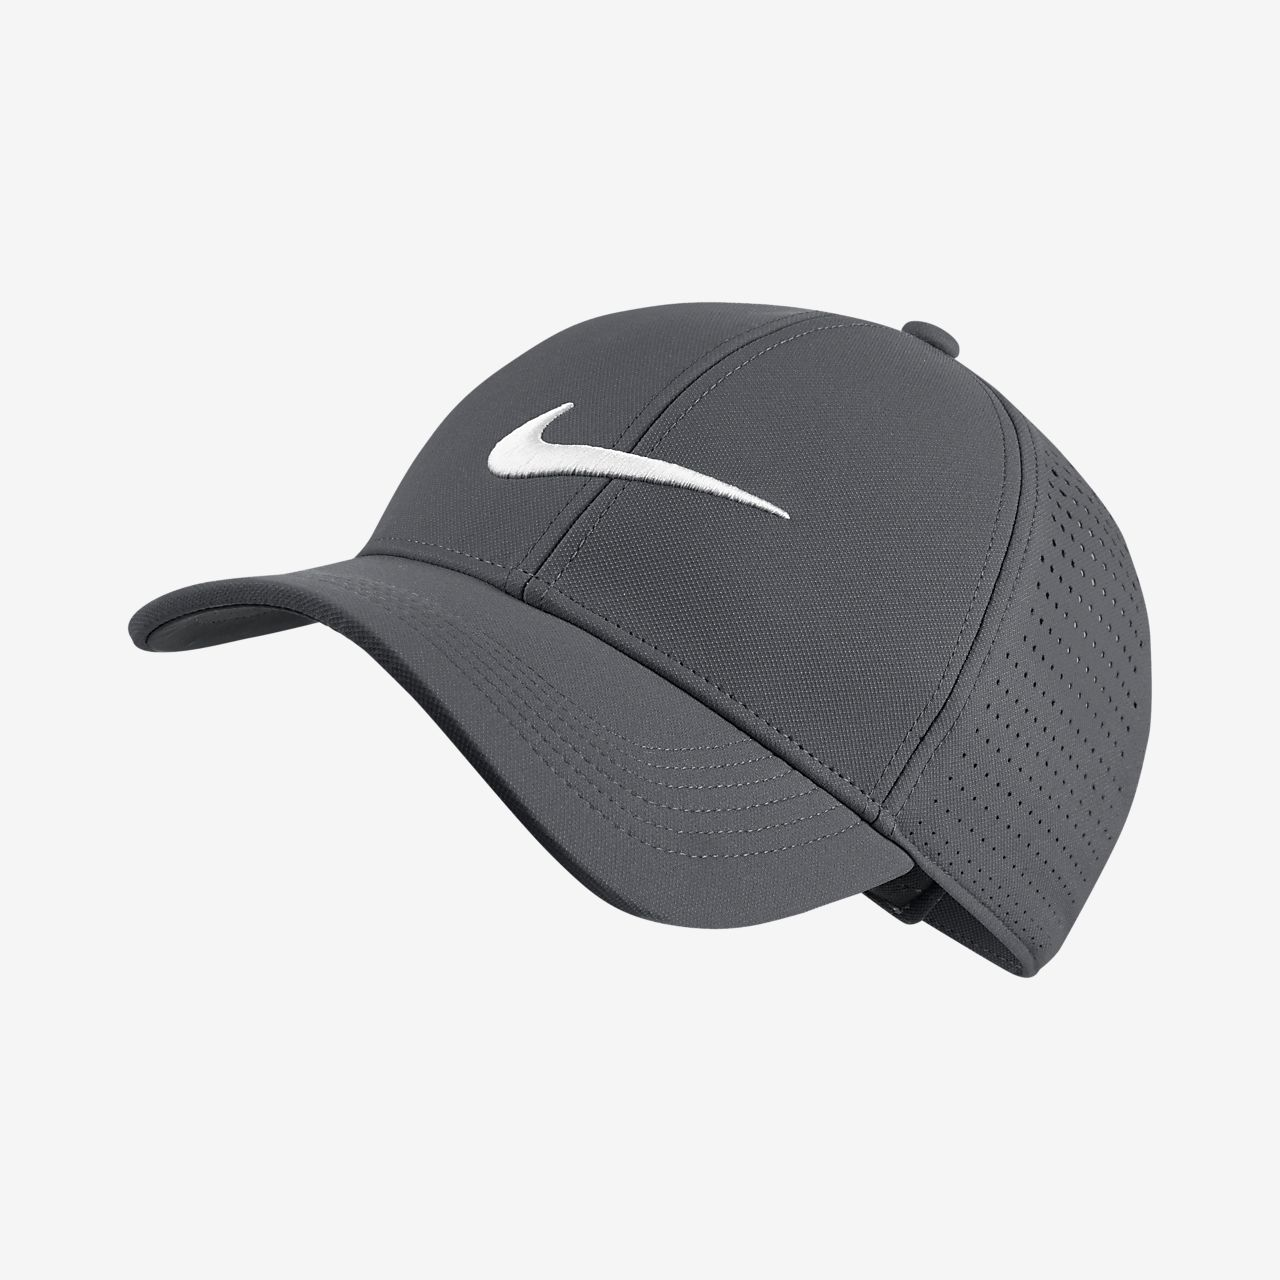 43613e8f565 Nike Legacy 91 Perforated Adjustable Golf Hat. Nike.com